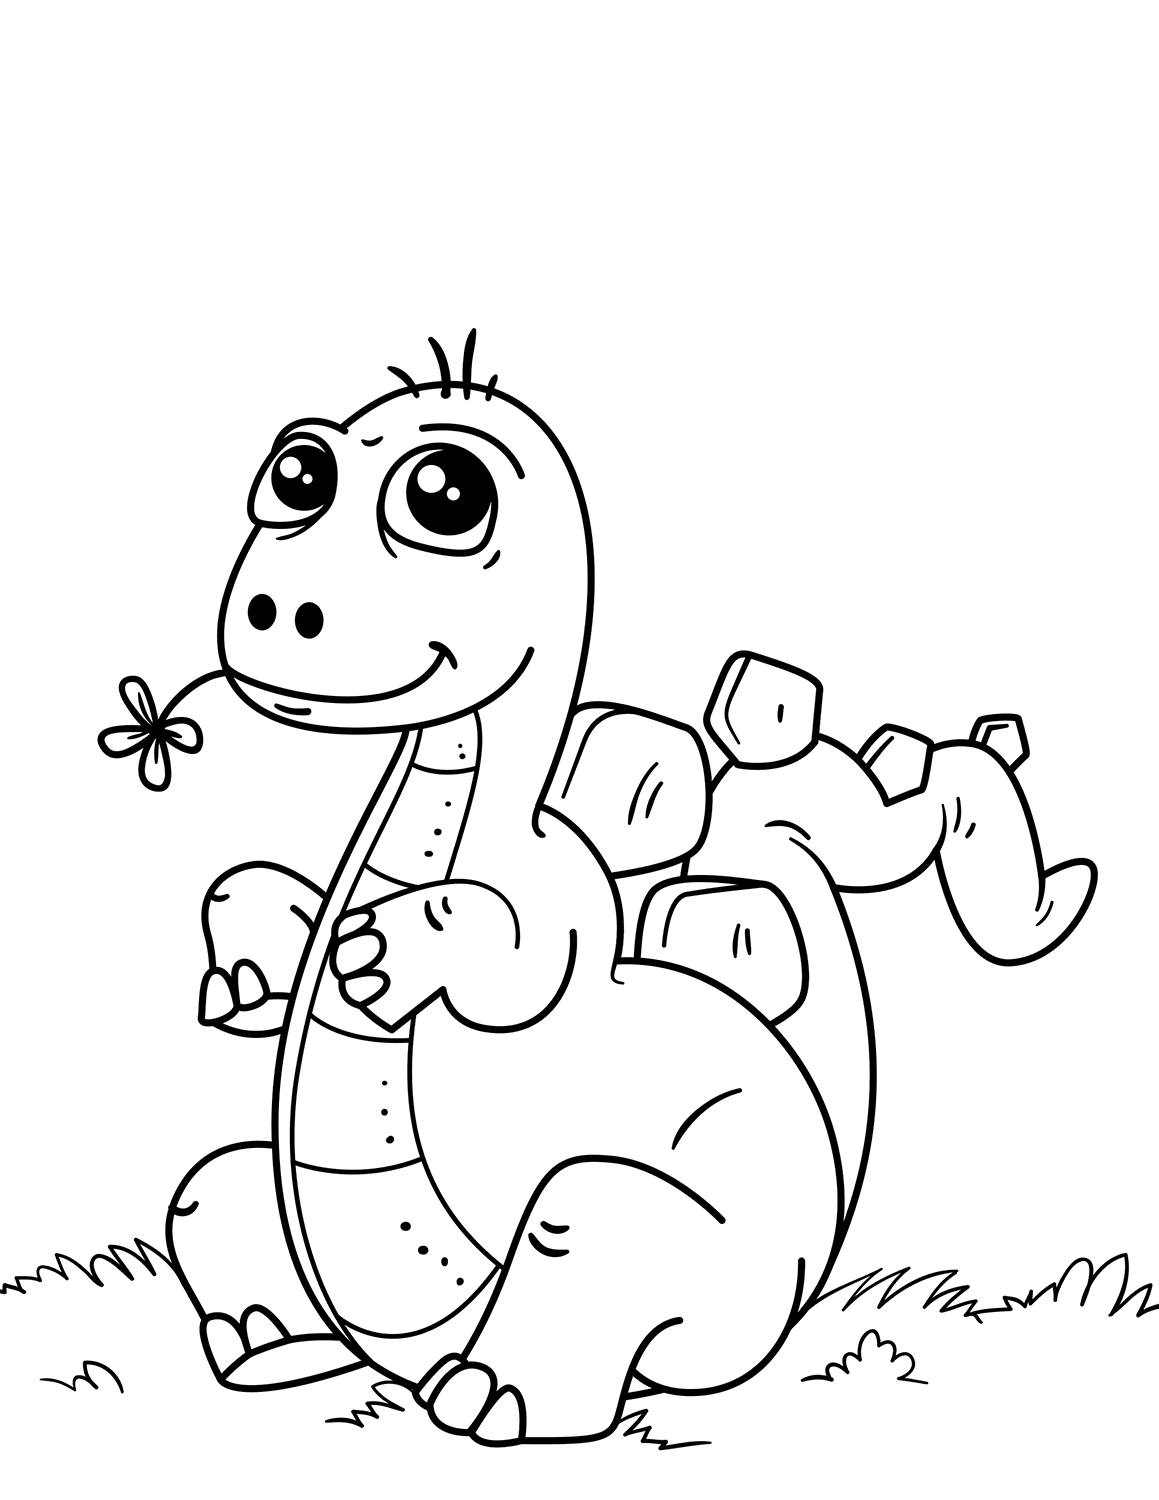 free printable dinosaur coloring pages baby dinosaur coloring pages for preschoolers dinosaur pages coloring printable dinosaur free